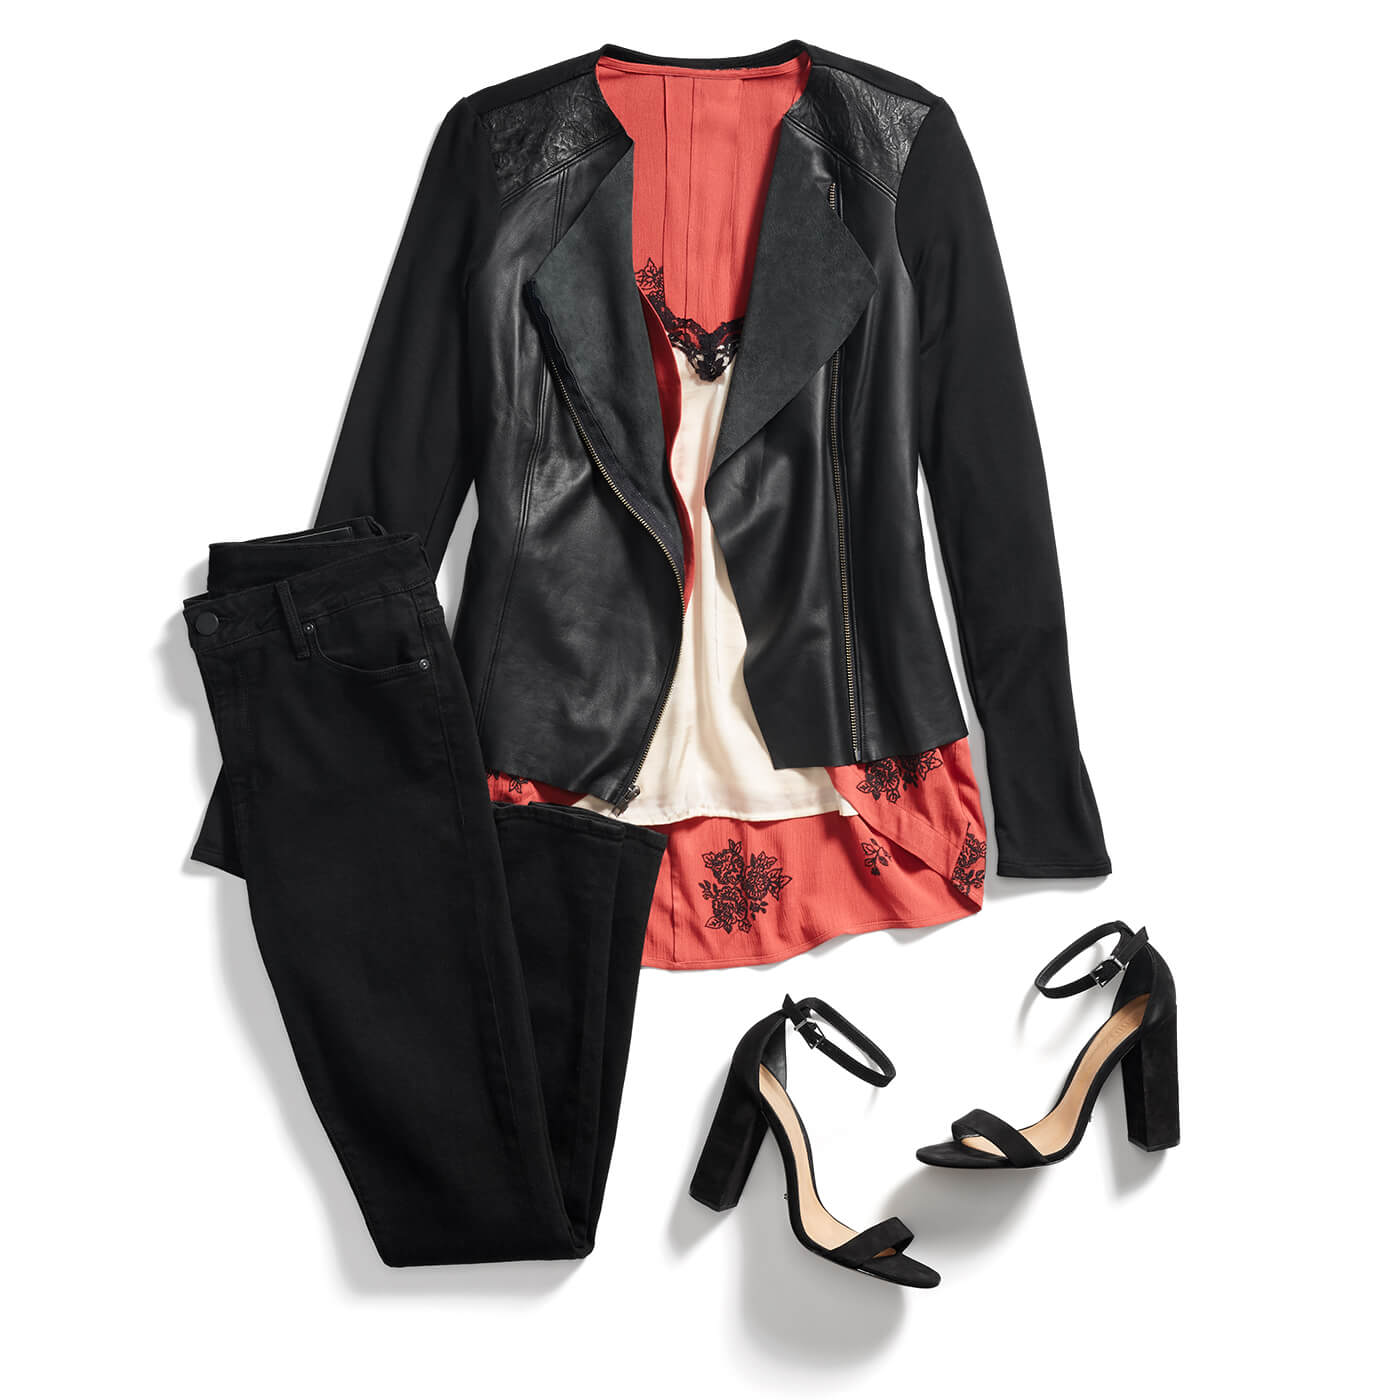 What to wear for dinner date